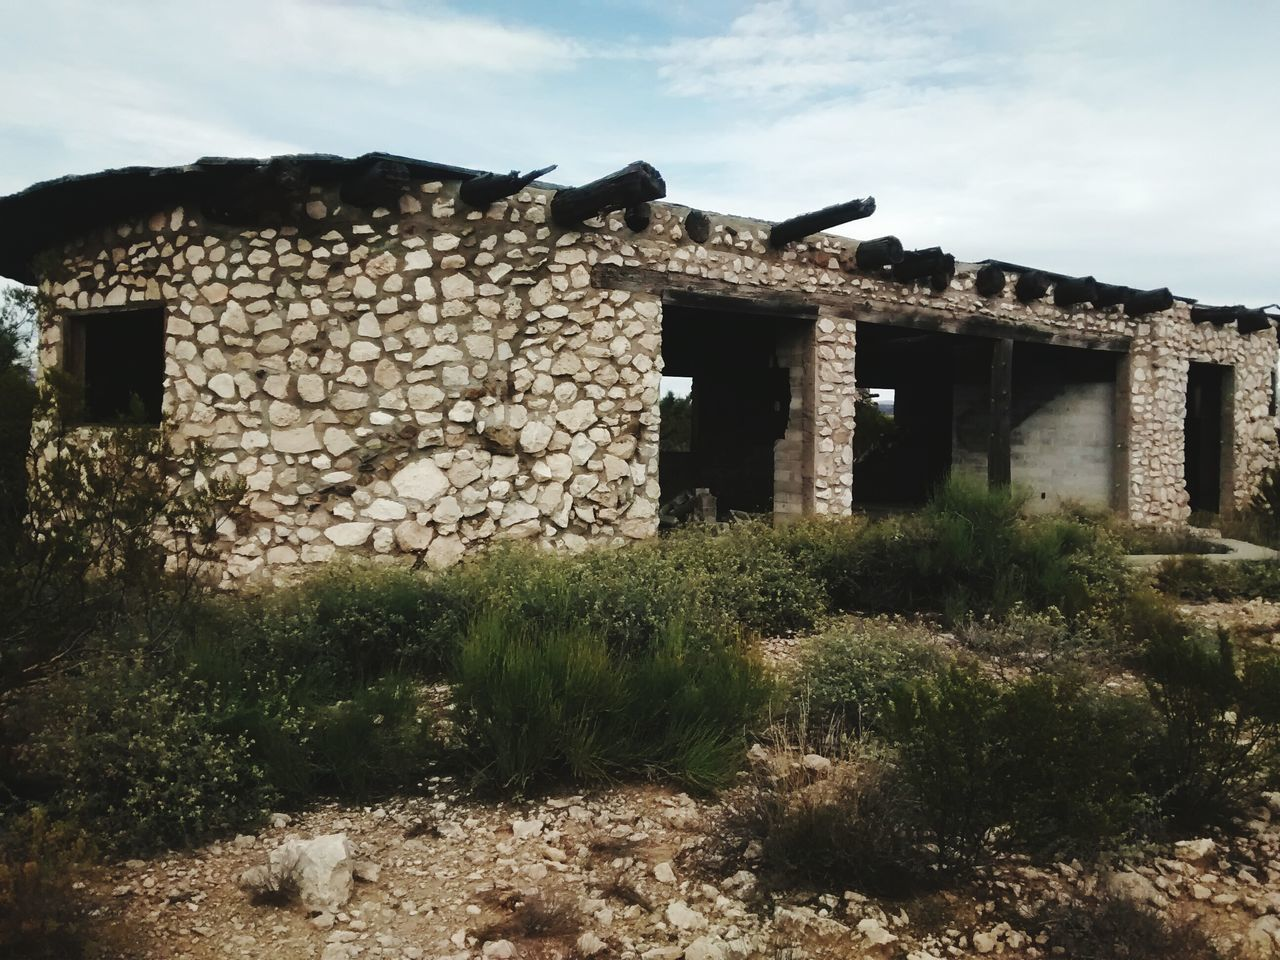 Built Structure Building Exterior Architecture House Grass Old Abandoned Damaged Old Ruin Cloud - Sky Sky Deterioration Ruined Outdoors Plant Stone Material Obsolete History Day The Past